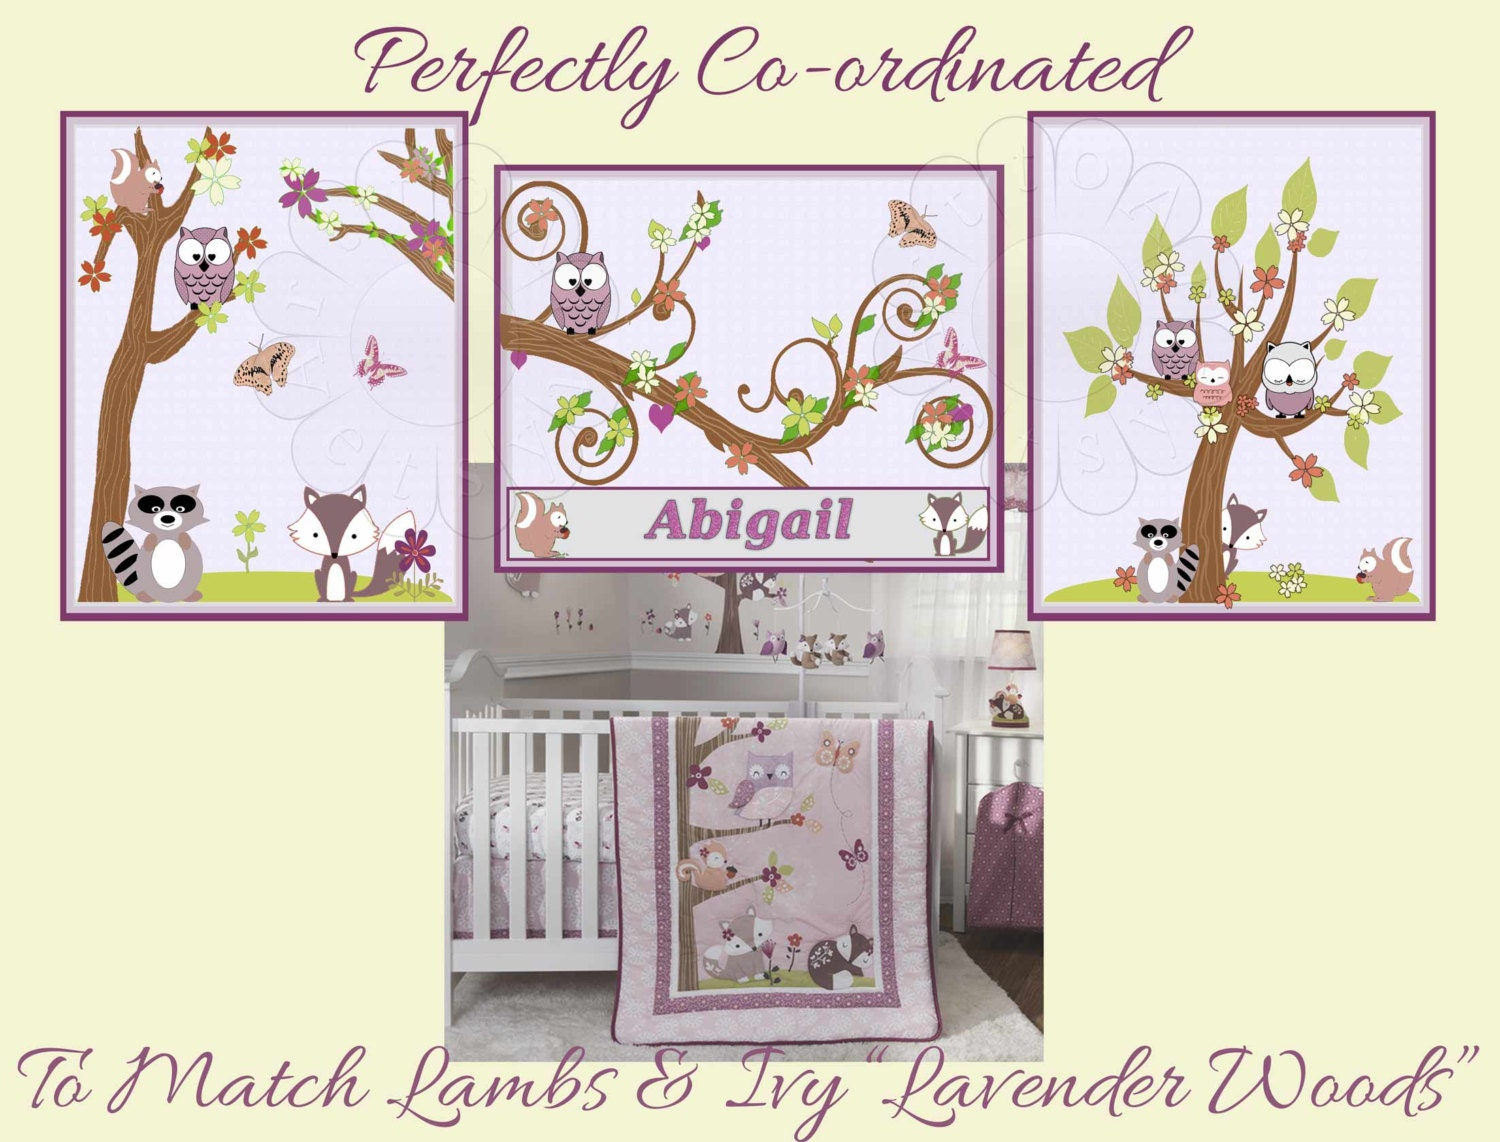 Lavender woods by lambs and ivy nursery prints personalized zoom negle Image collections